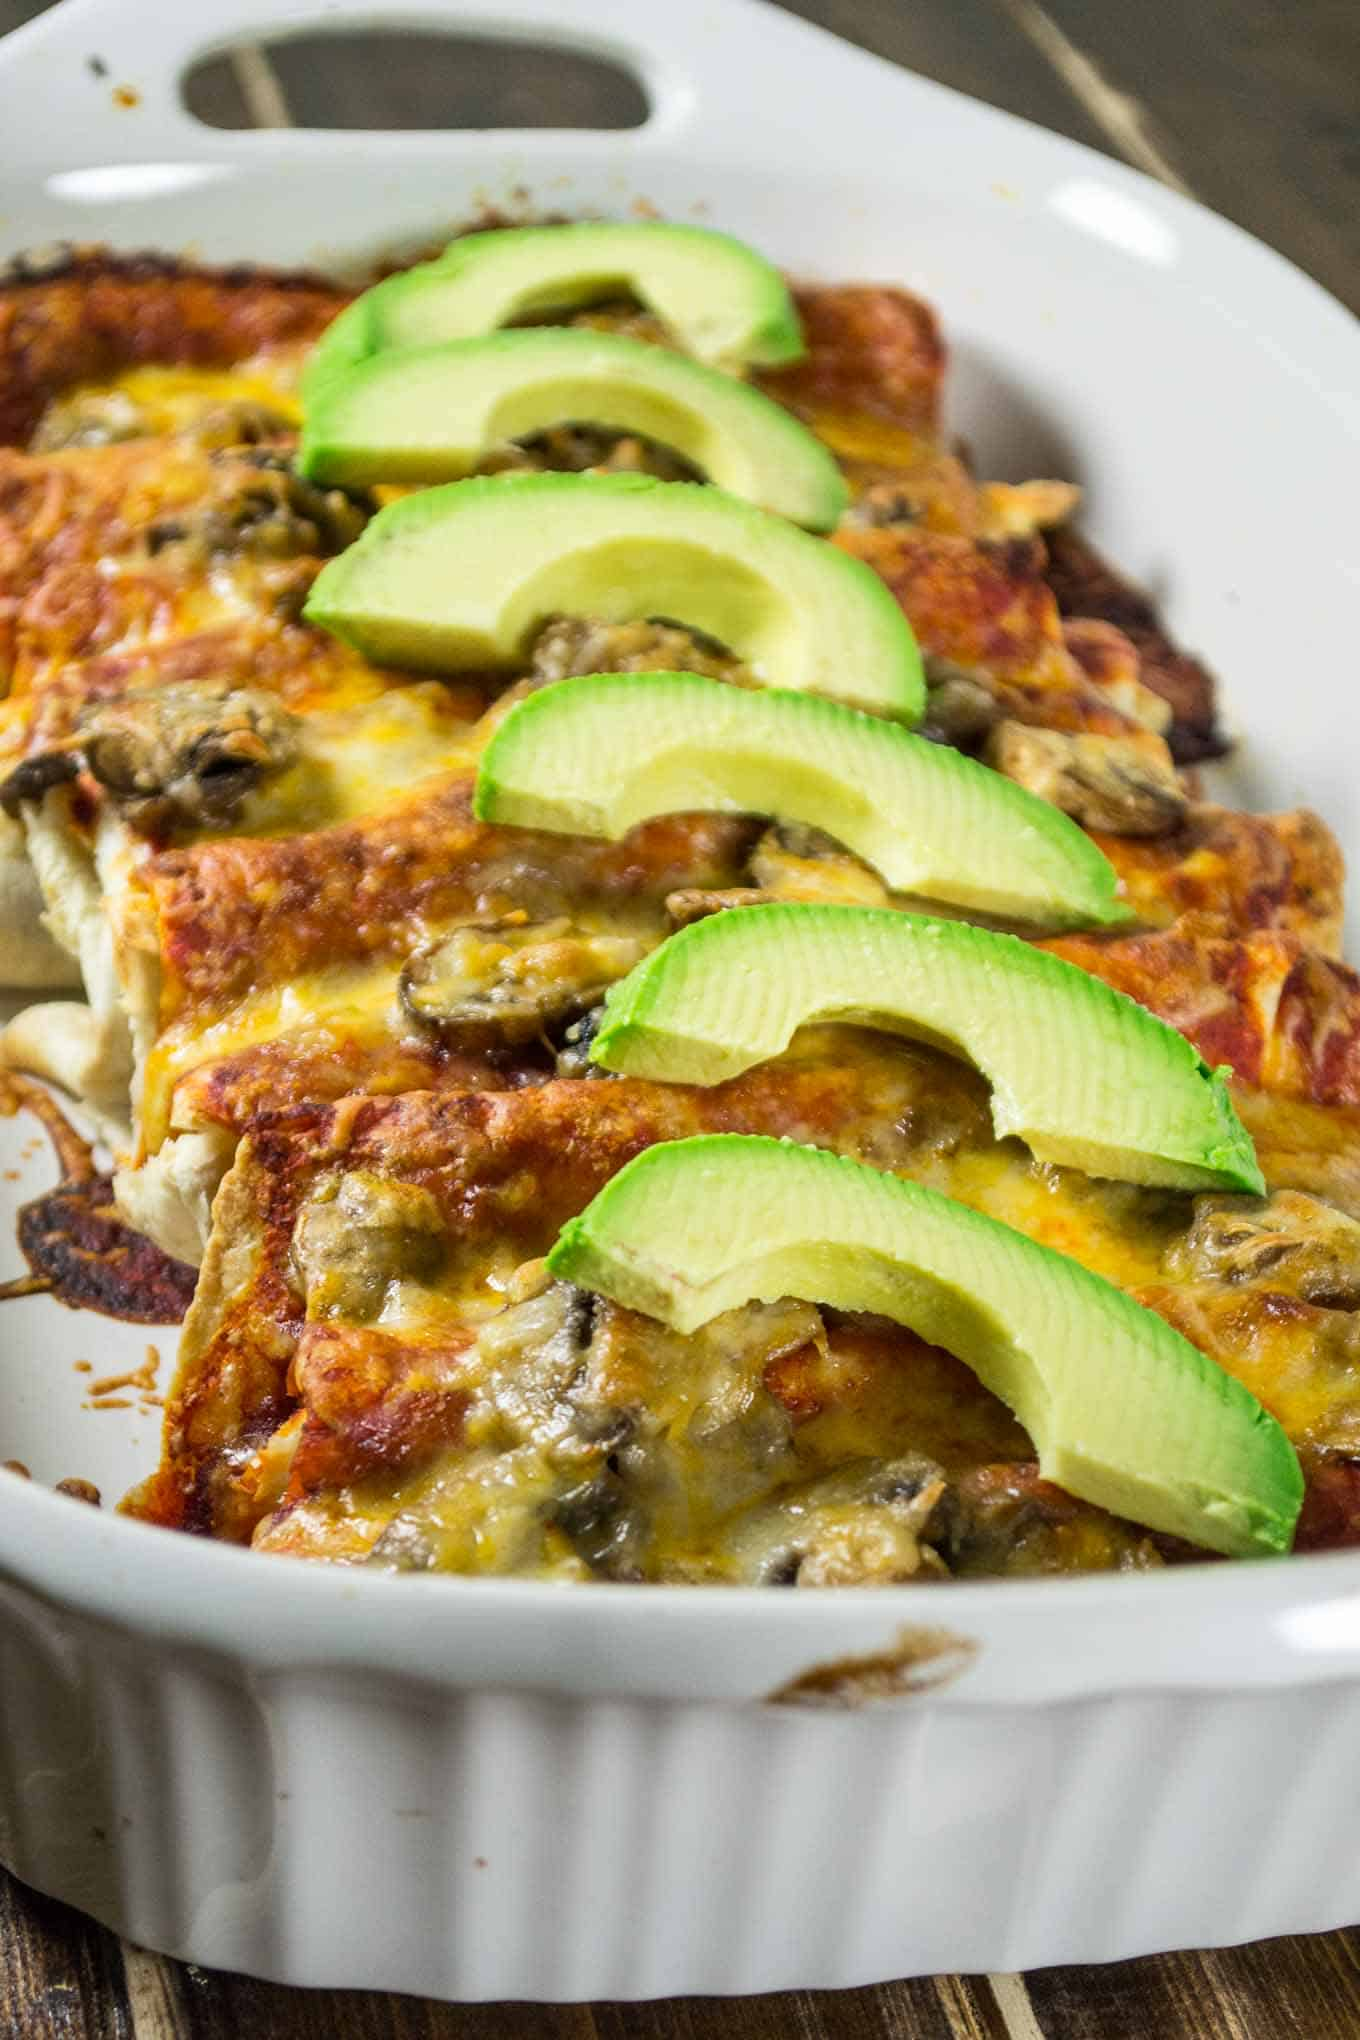 These simple refried bean enchiladas come together in minutes and are both impressive and delicious!